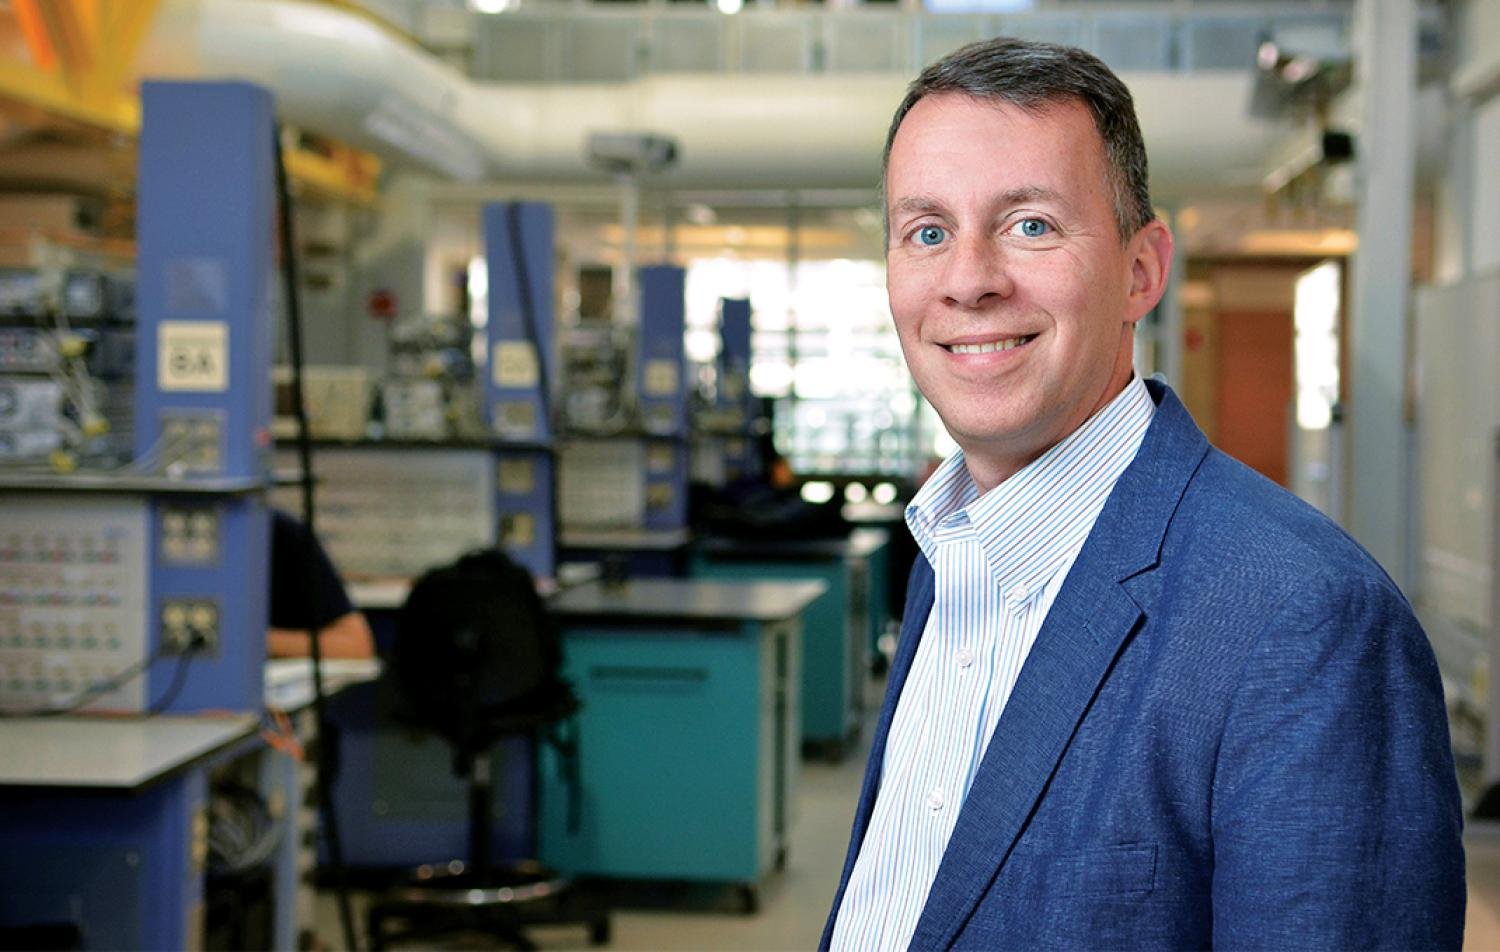 Bobby Braun poses for a photograph in his lab